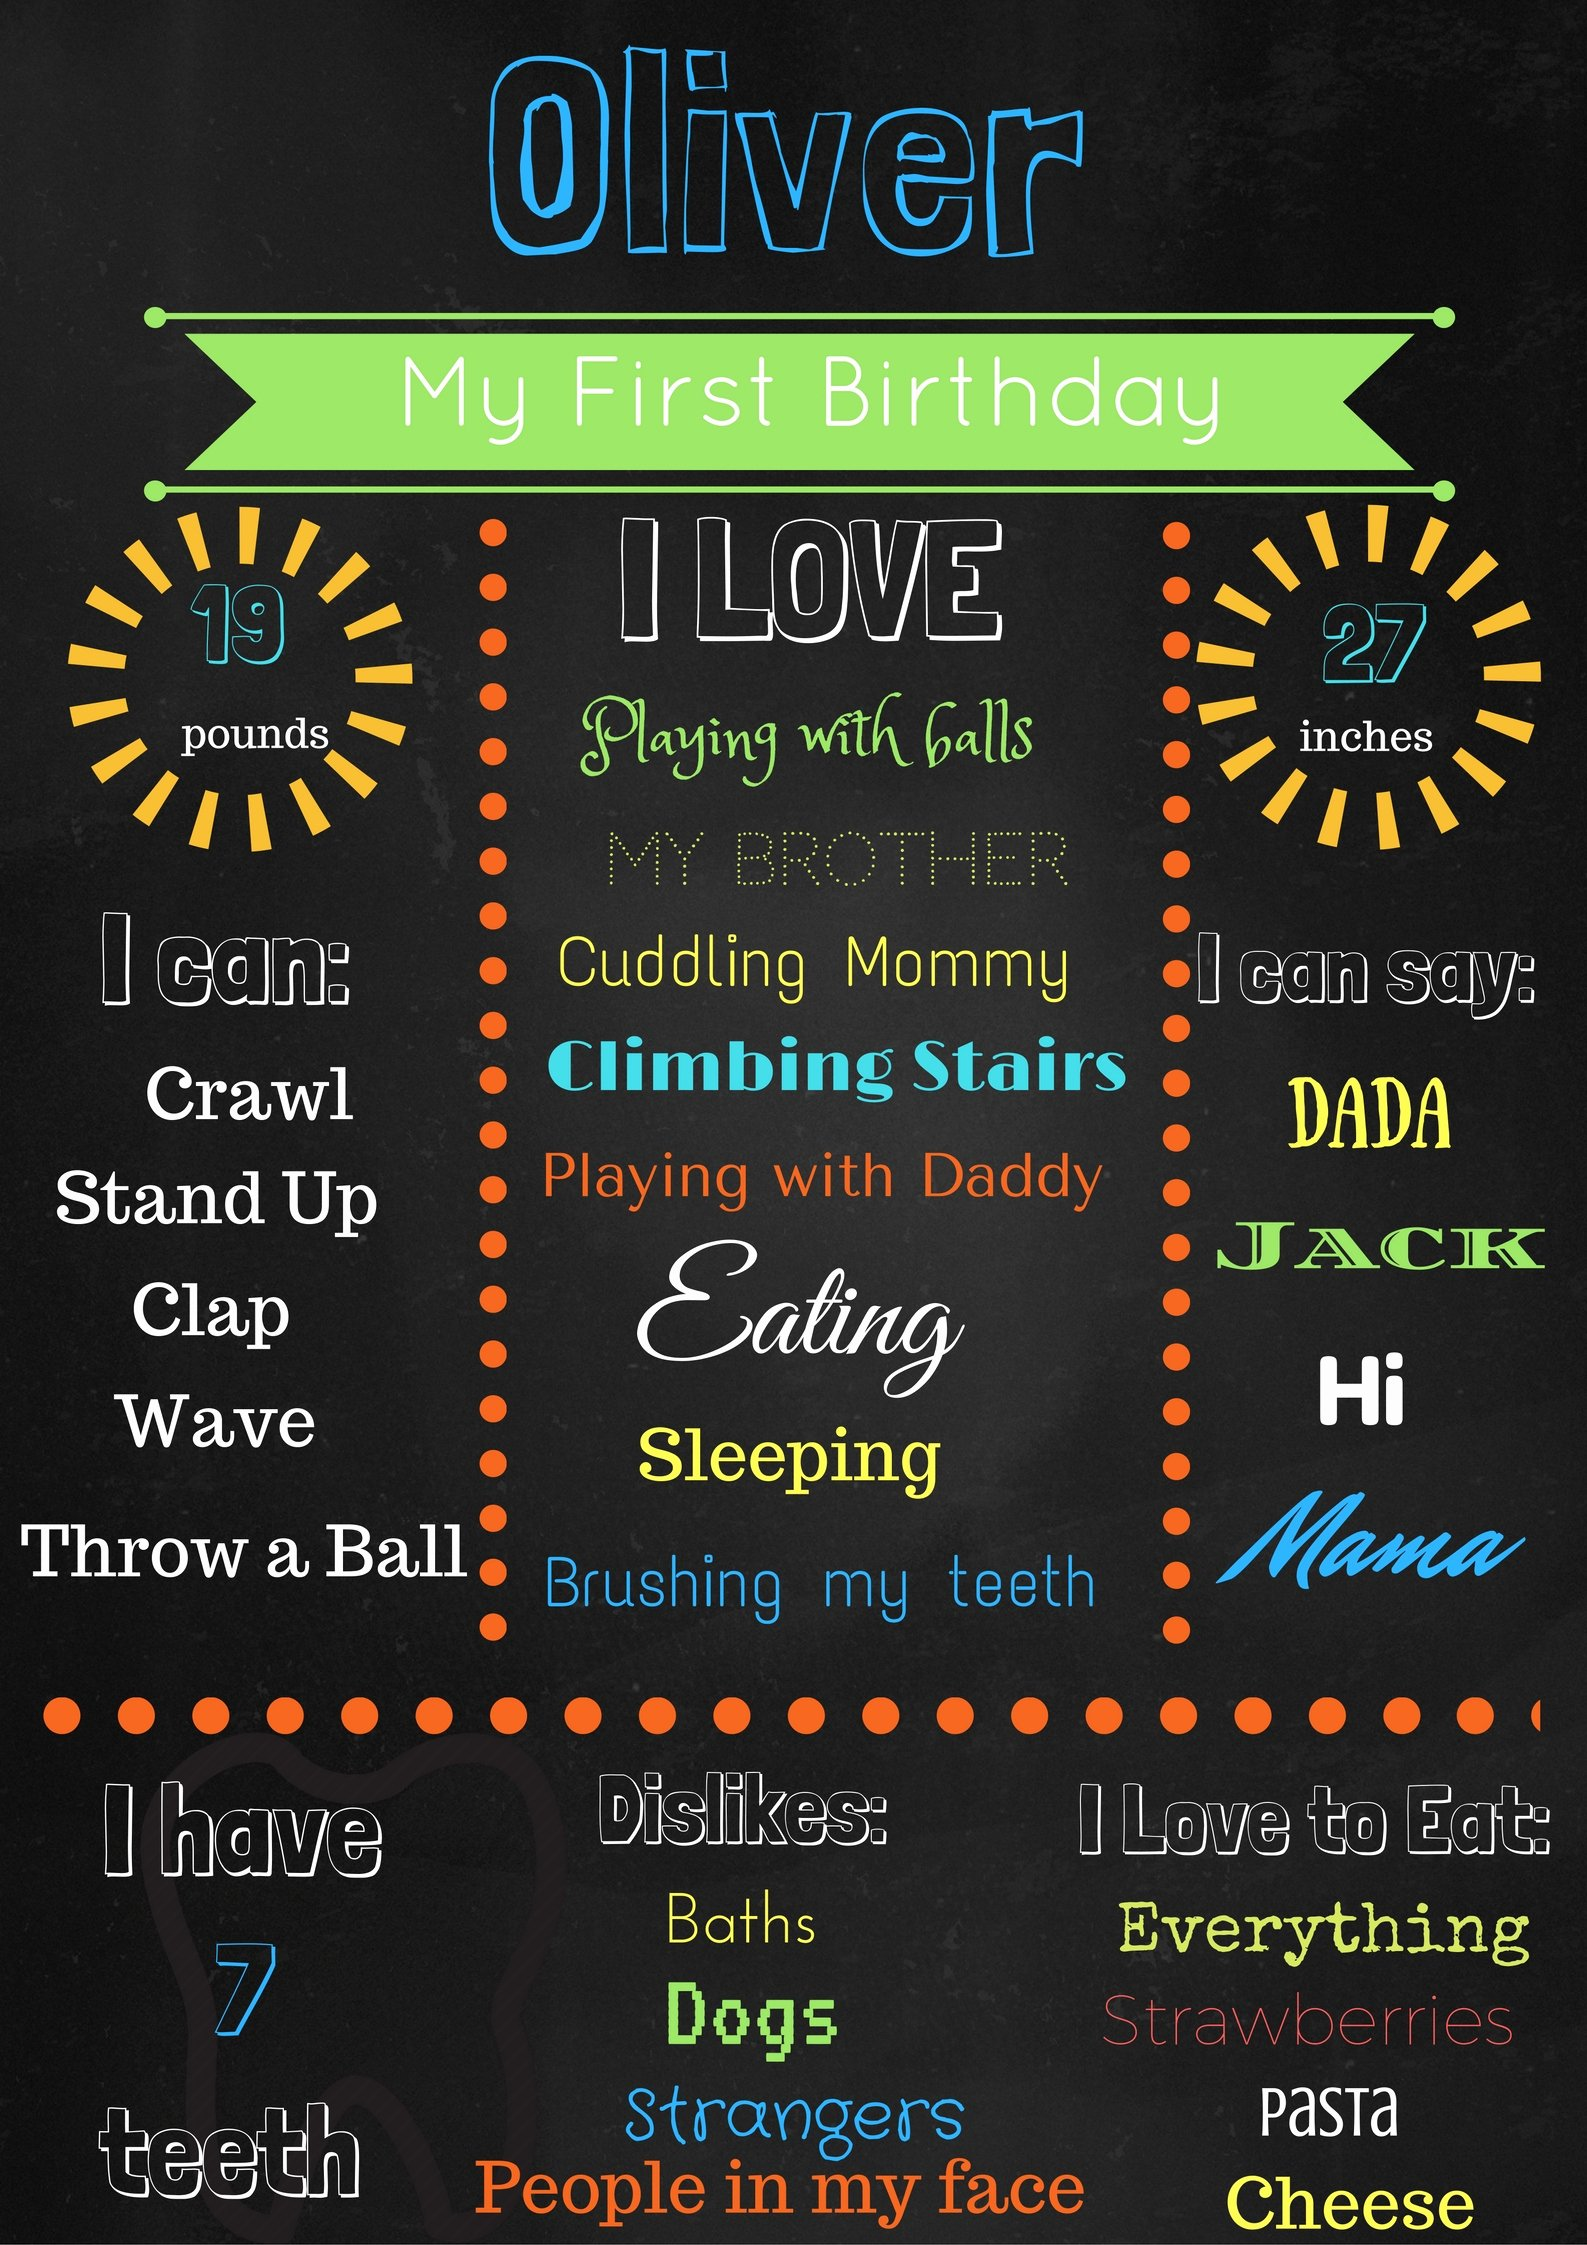 Chalkboard Poster Template Free Fresh Free Editable and Printable Chalkboard Birthday Poster